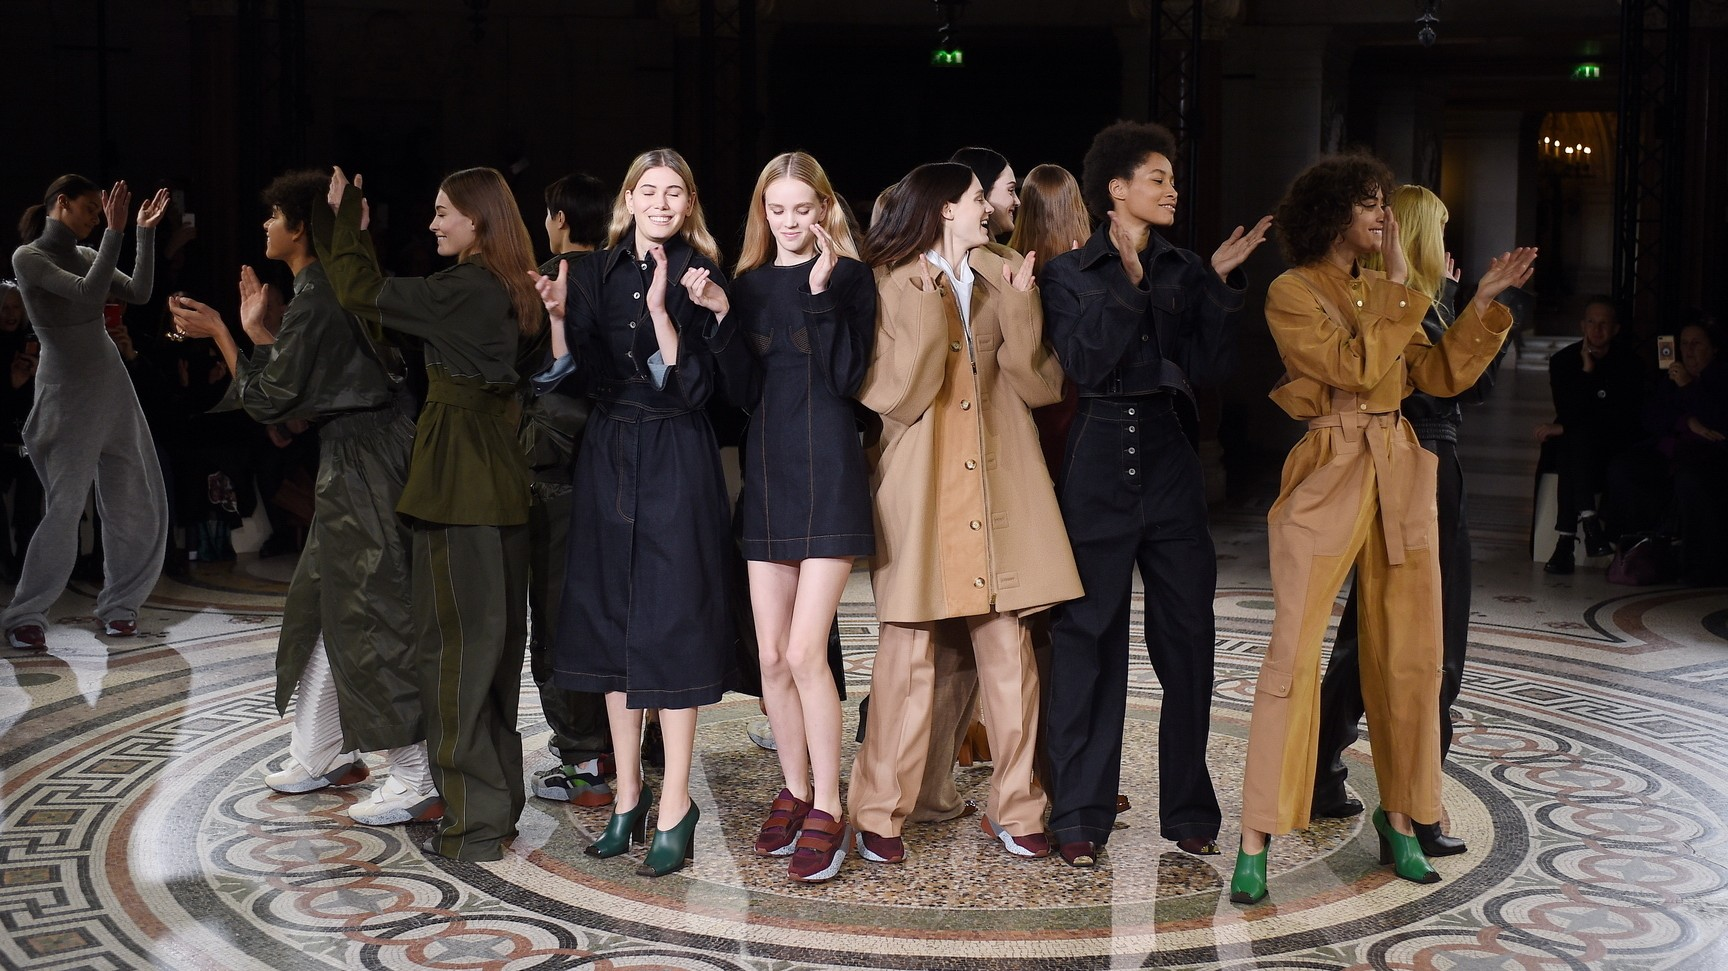 smile therapy: stella mccartney, hermès and alexander mcqueen at paris fashion week